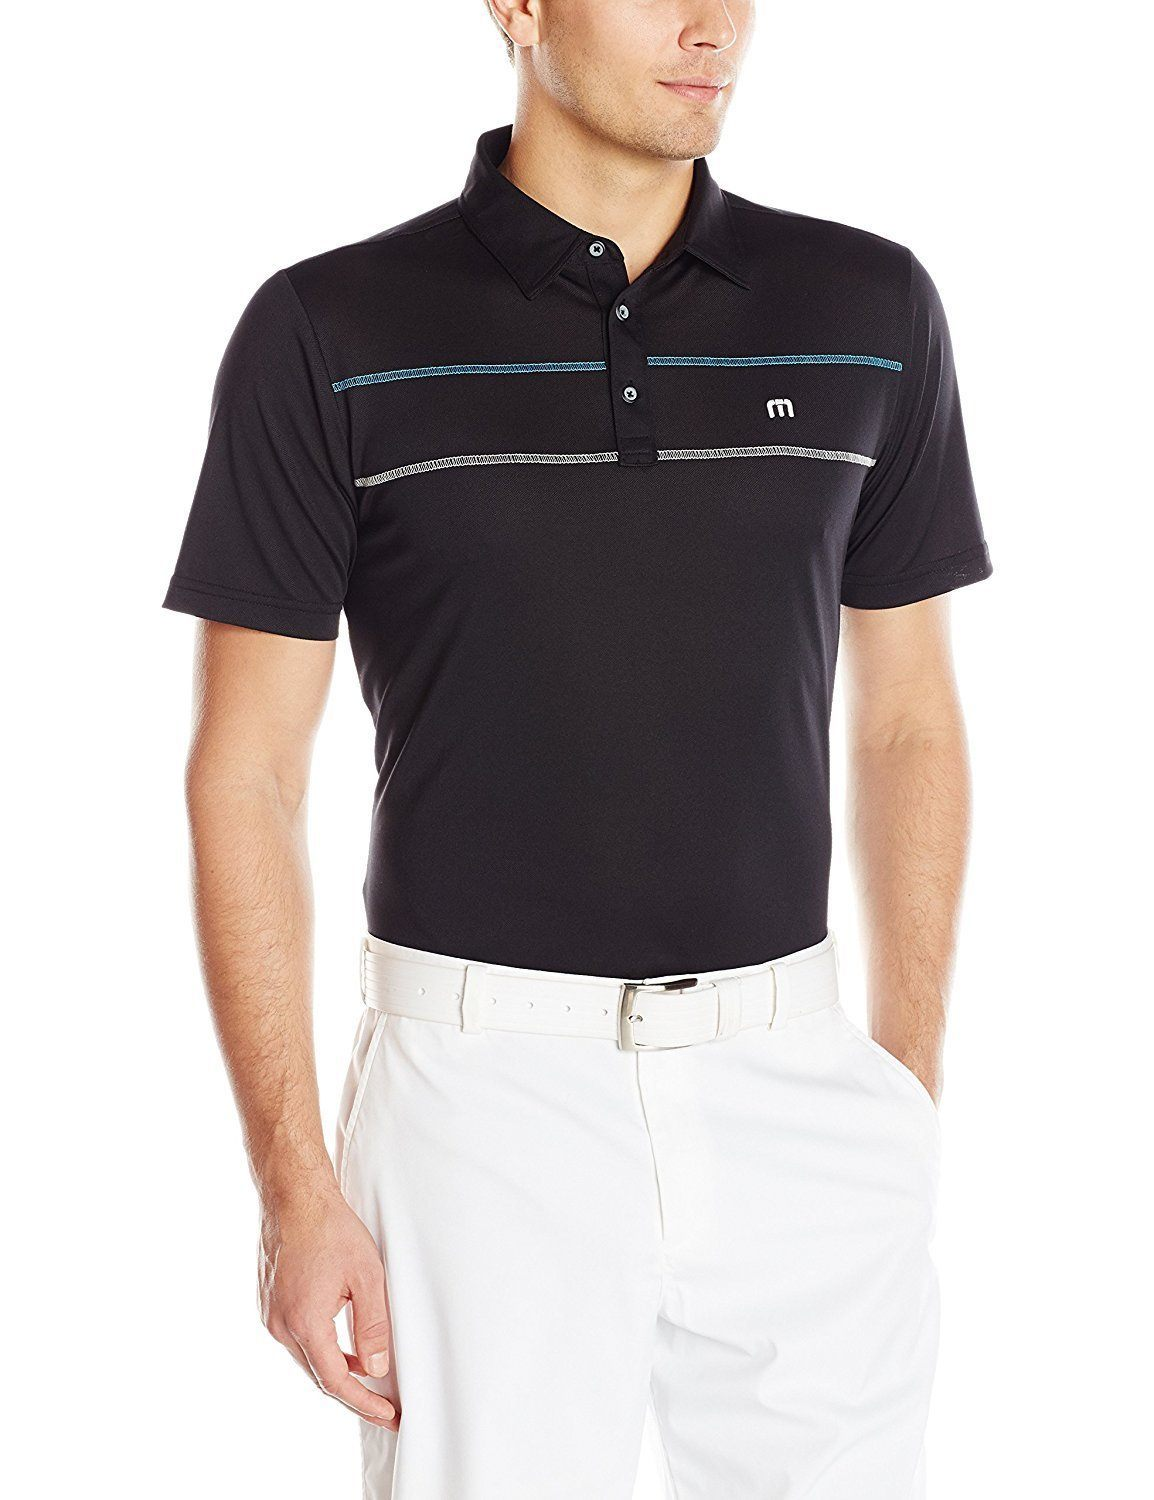 Travis Mathew Junior Golf Shirt